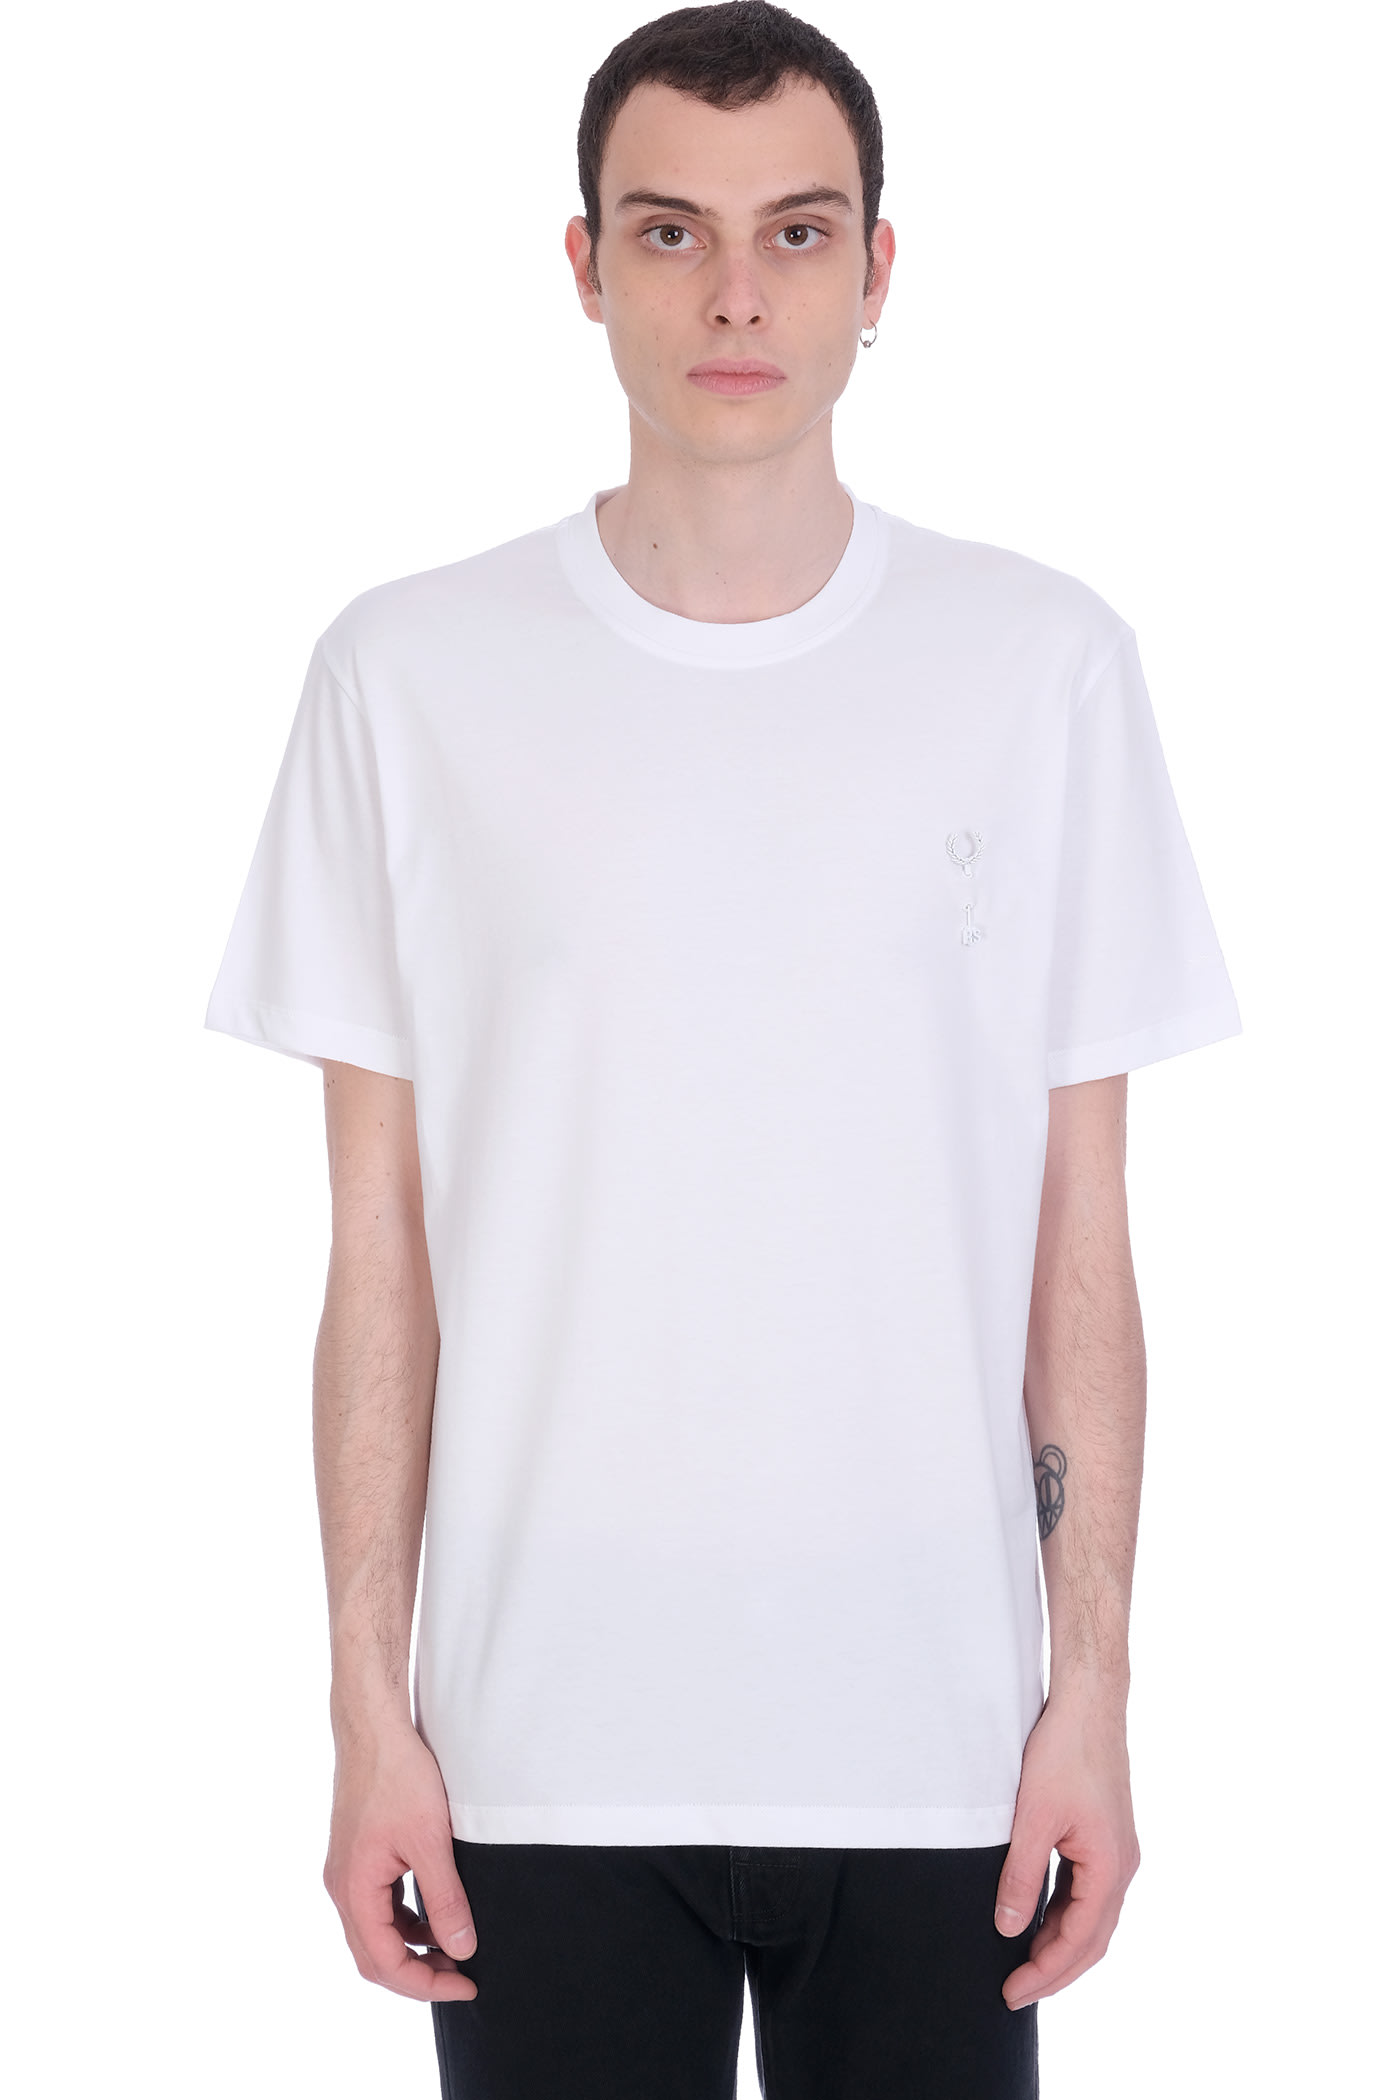 Fred Perry by Raf Simons T-shirt In White Cotton